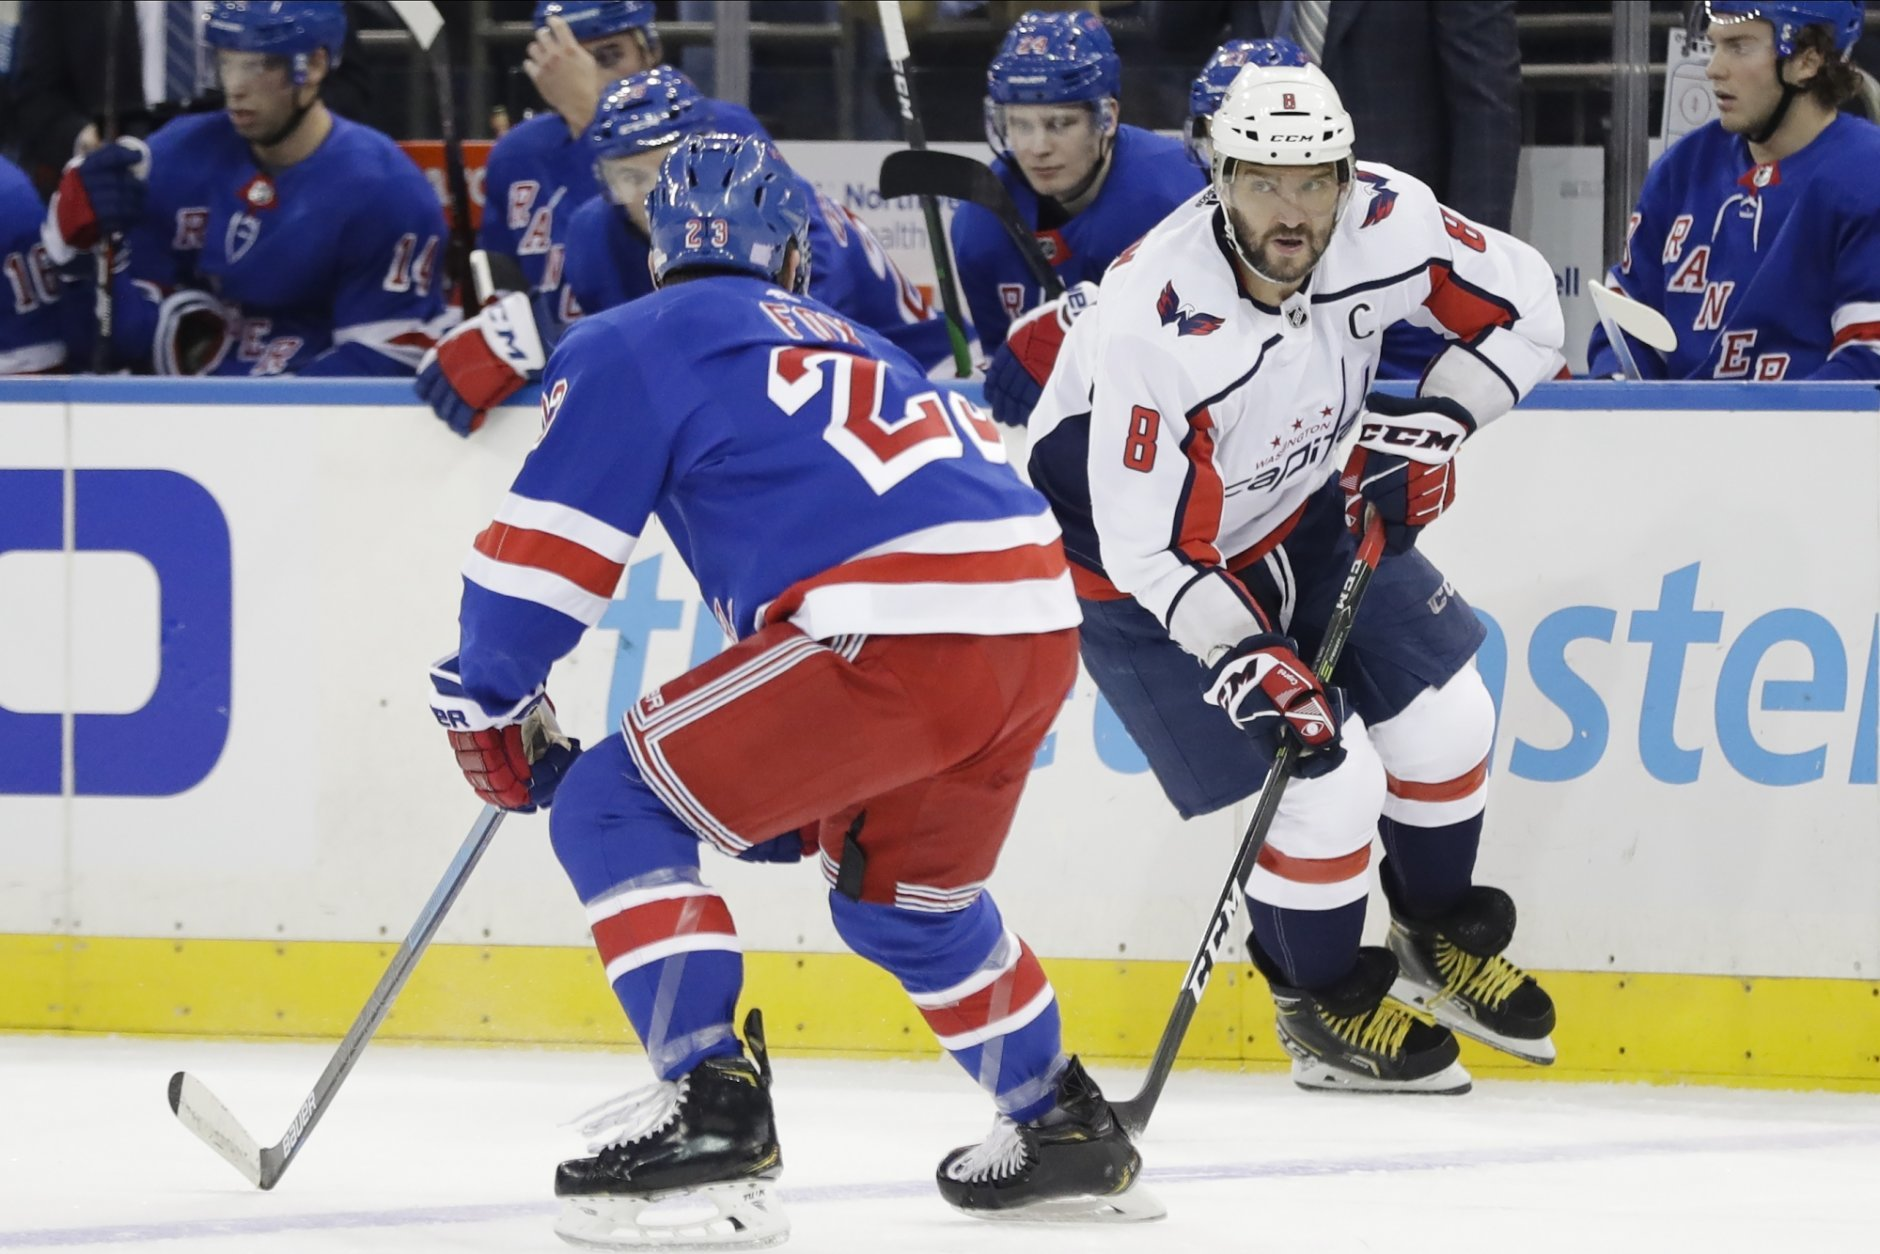 New York Rangers' Adam Fox (23) defends against Washington Capitals' Alex Ovechkin (8) during the first period of an NHL hockey game Wednesday, Nov. 20, 2019, in New York. (AP Photo/Frank Franklin II)